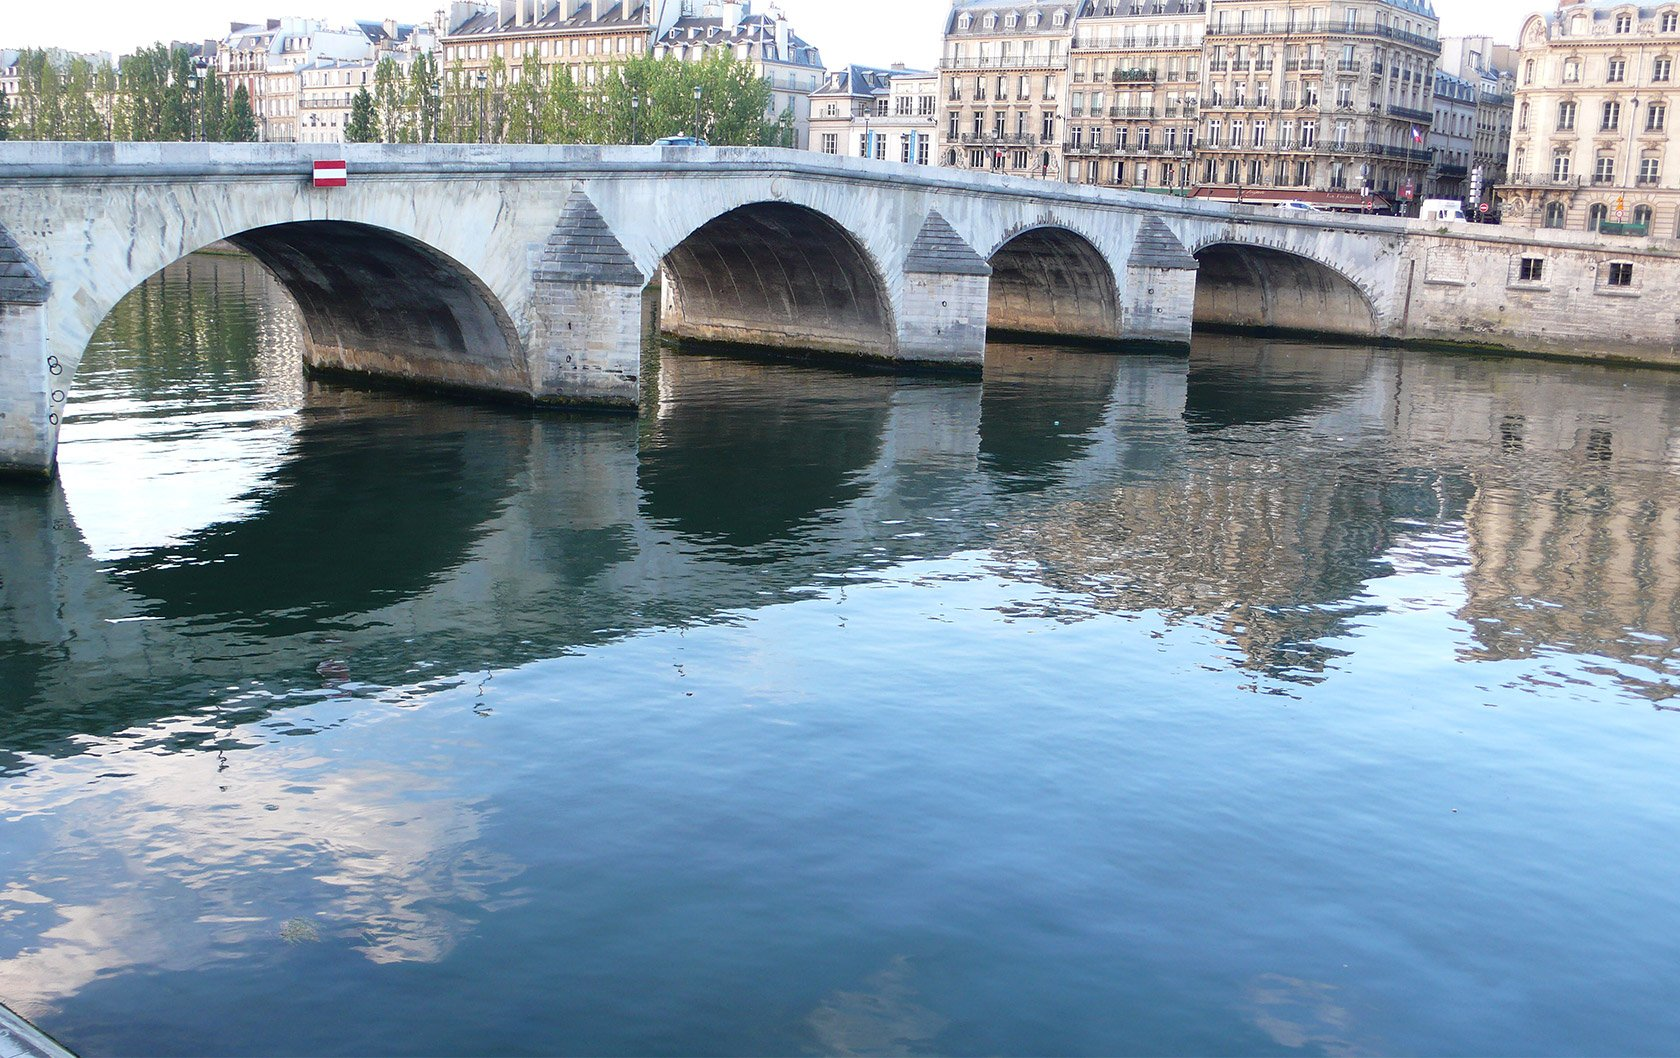 reflections-bridges-paris-seine